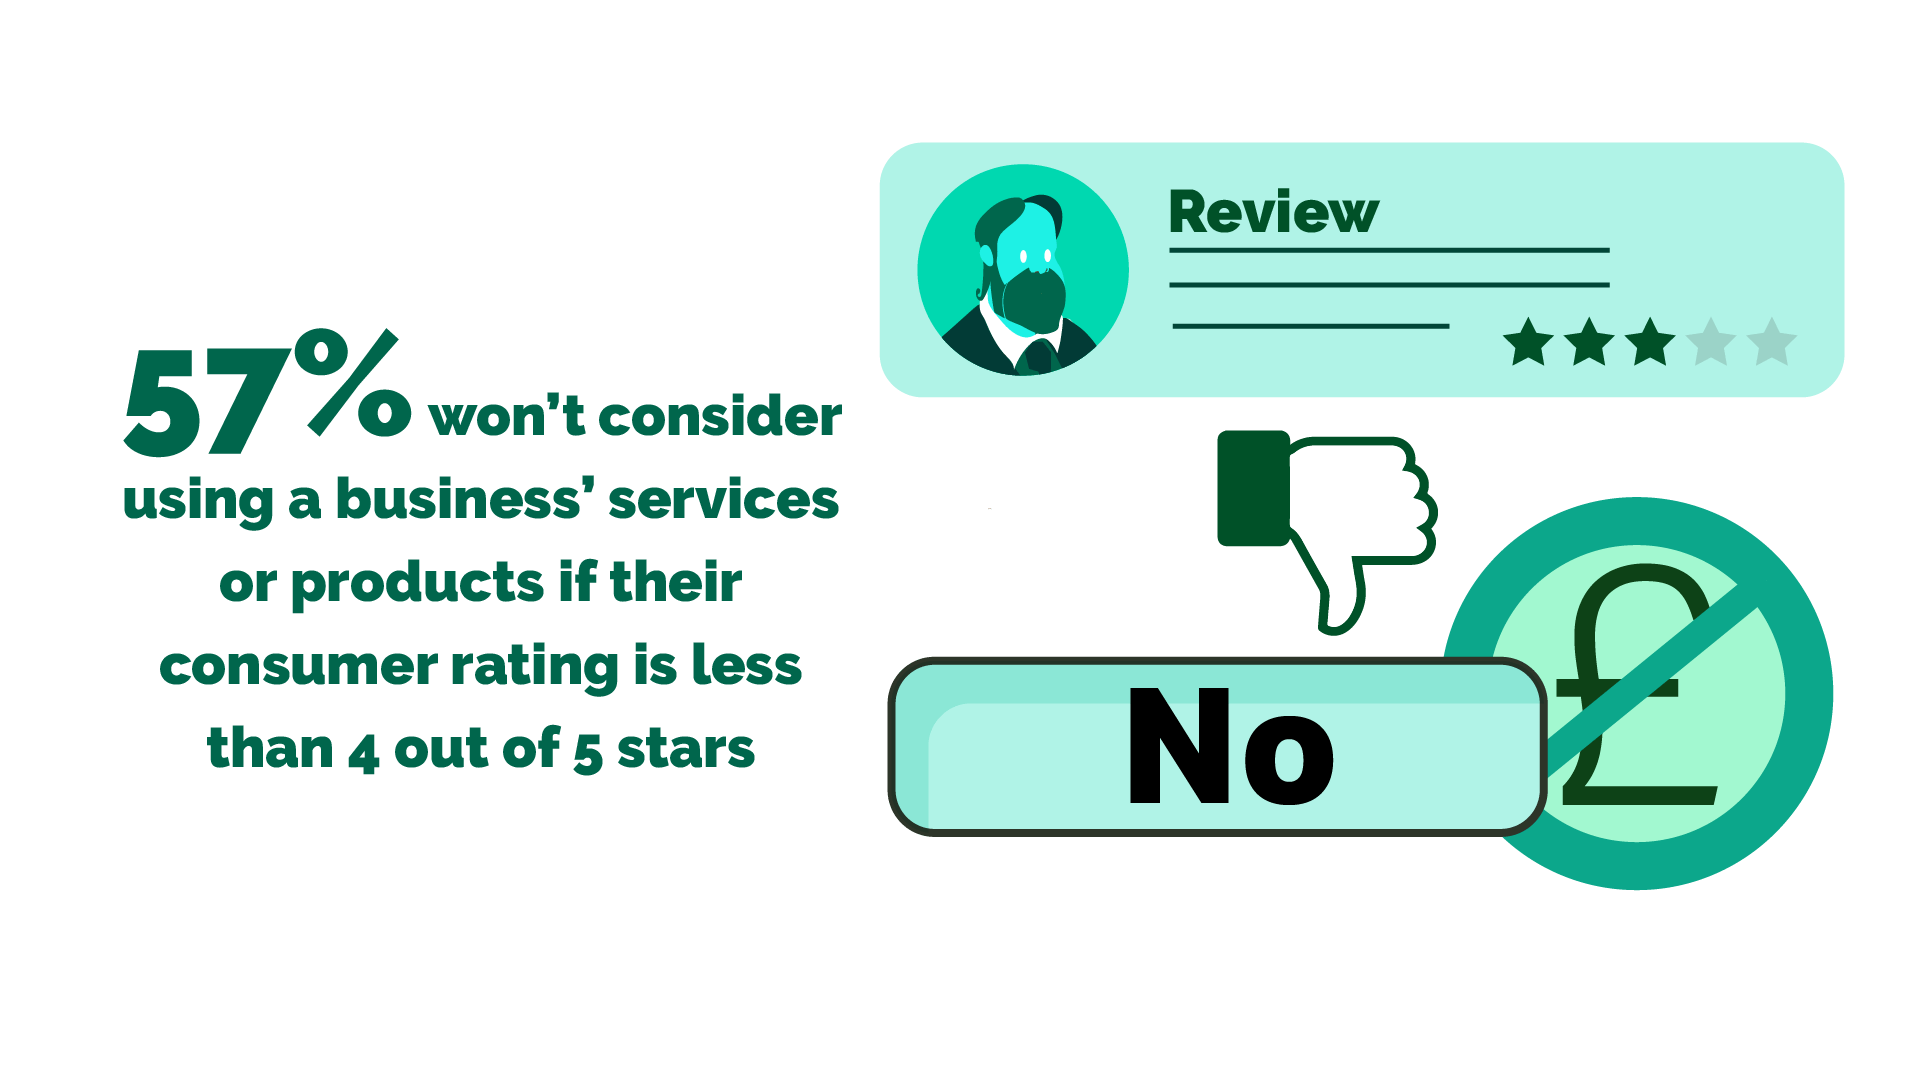 Image: 57% won't consider using a business' services or products if their consumer rating is less than 4 out of 5 stars